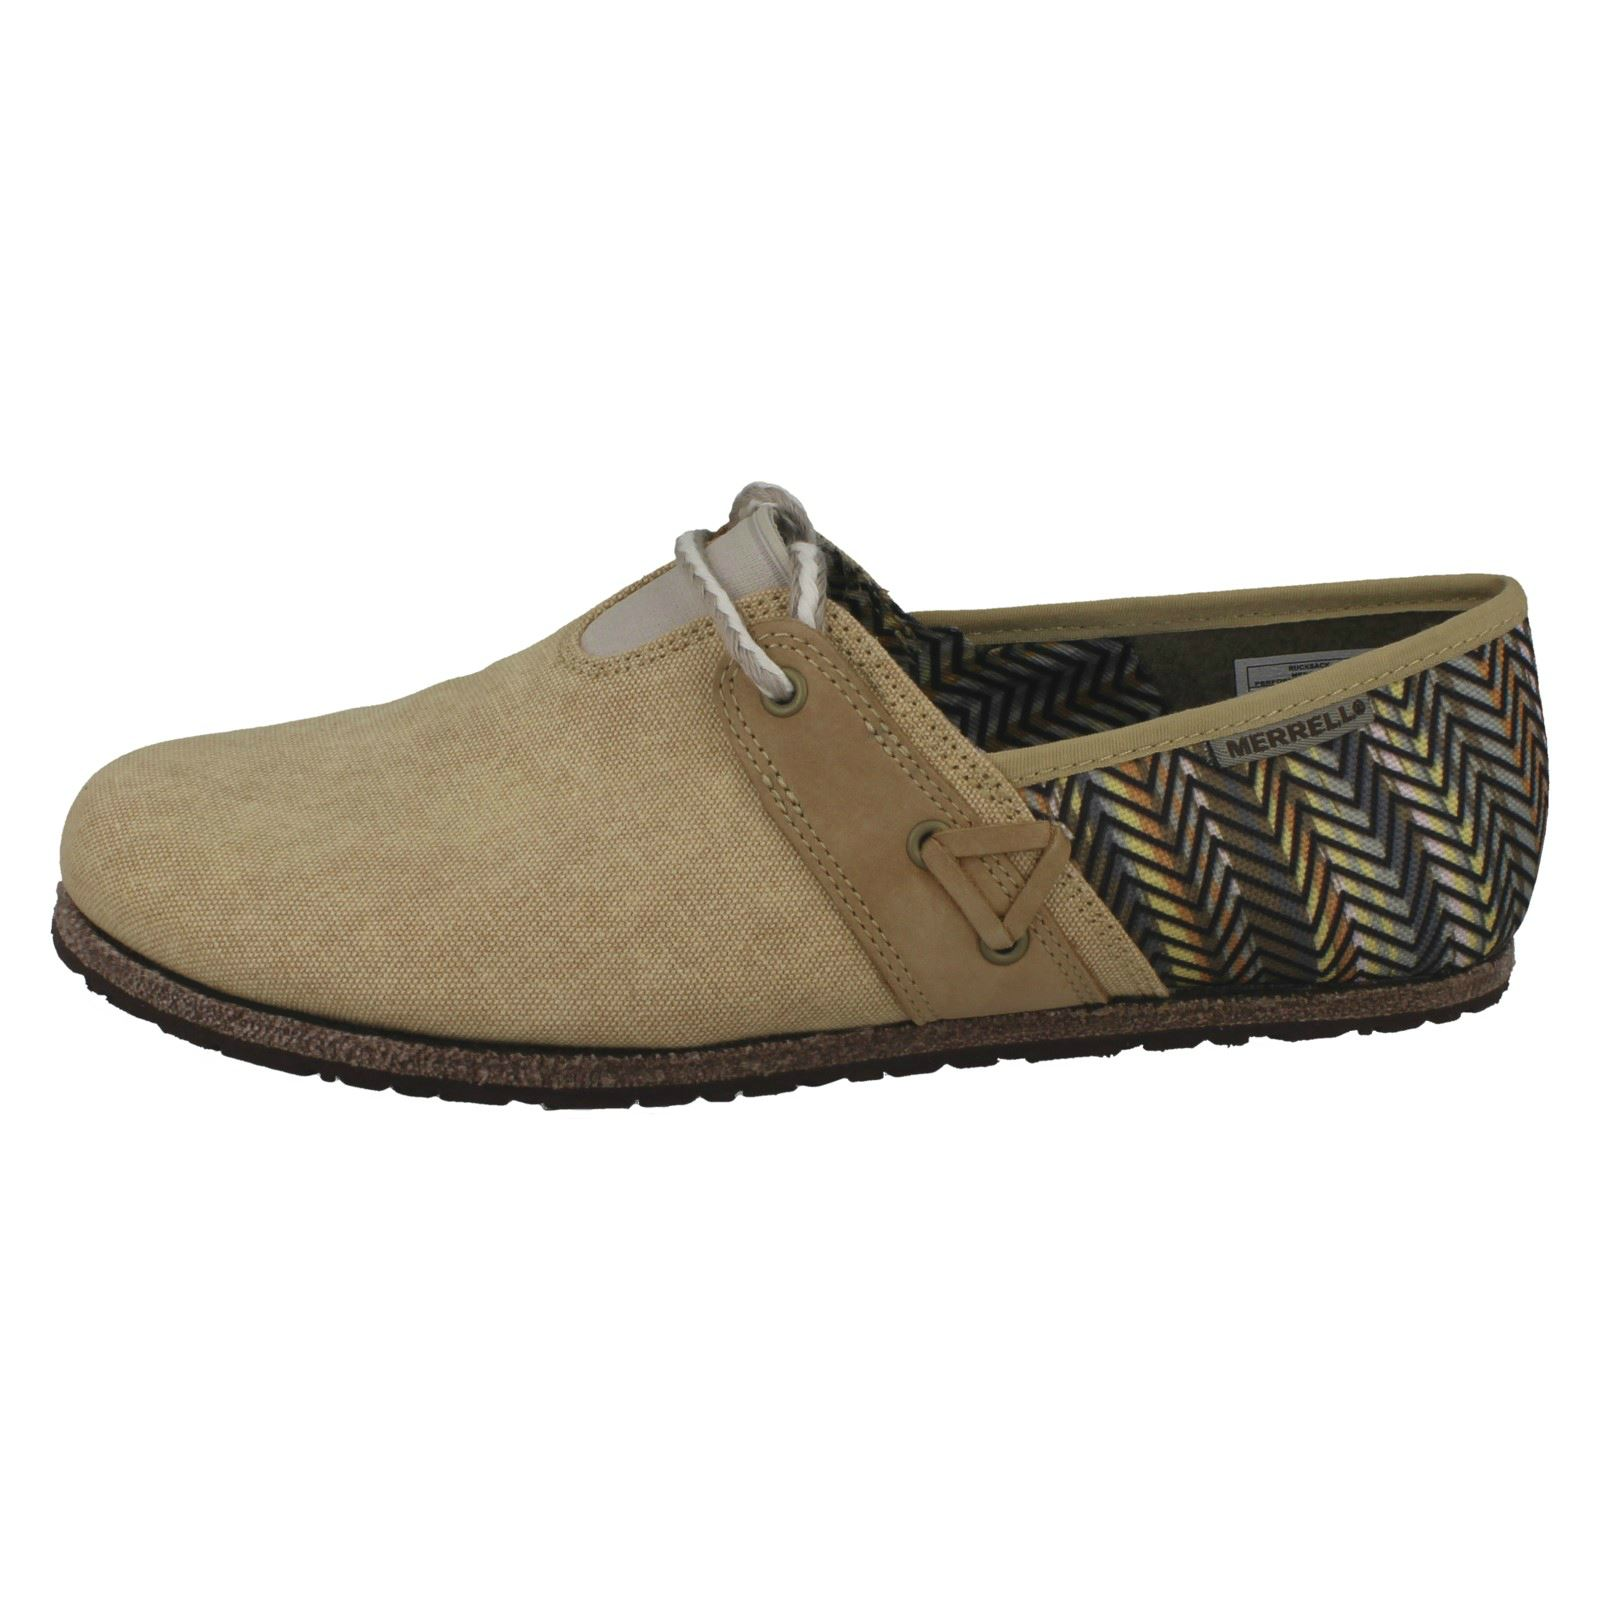 Ladies-Merrell-Casual-Flat-Shoes-039-Artemisia-039 thumbnail 10